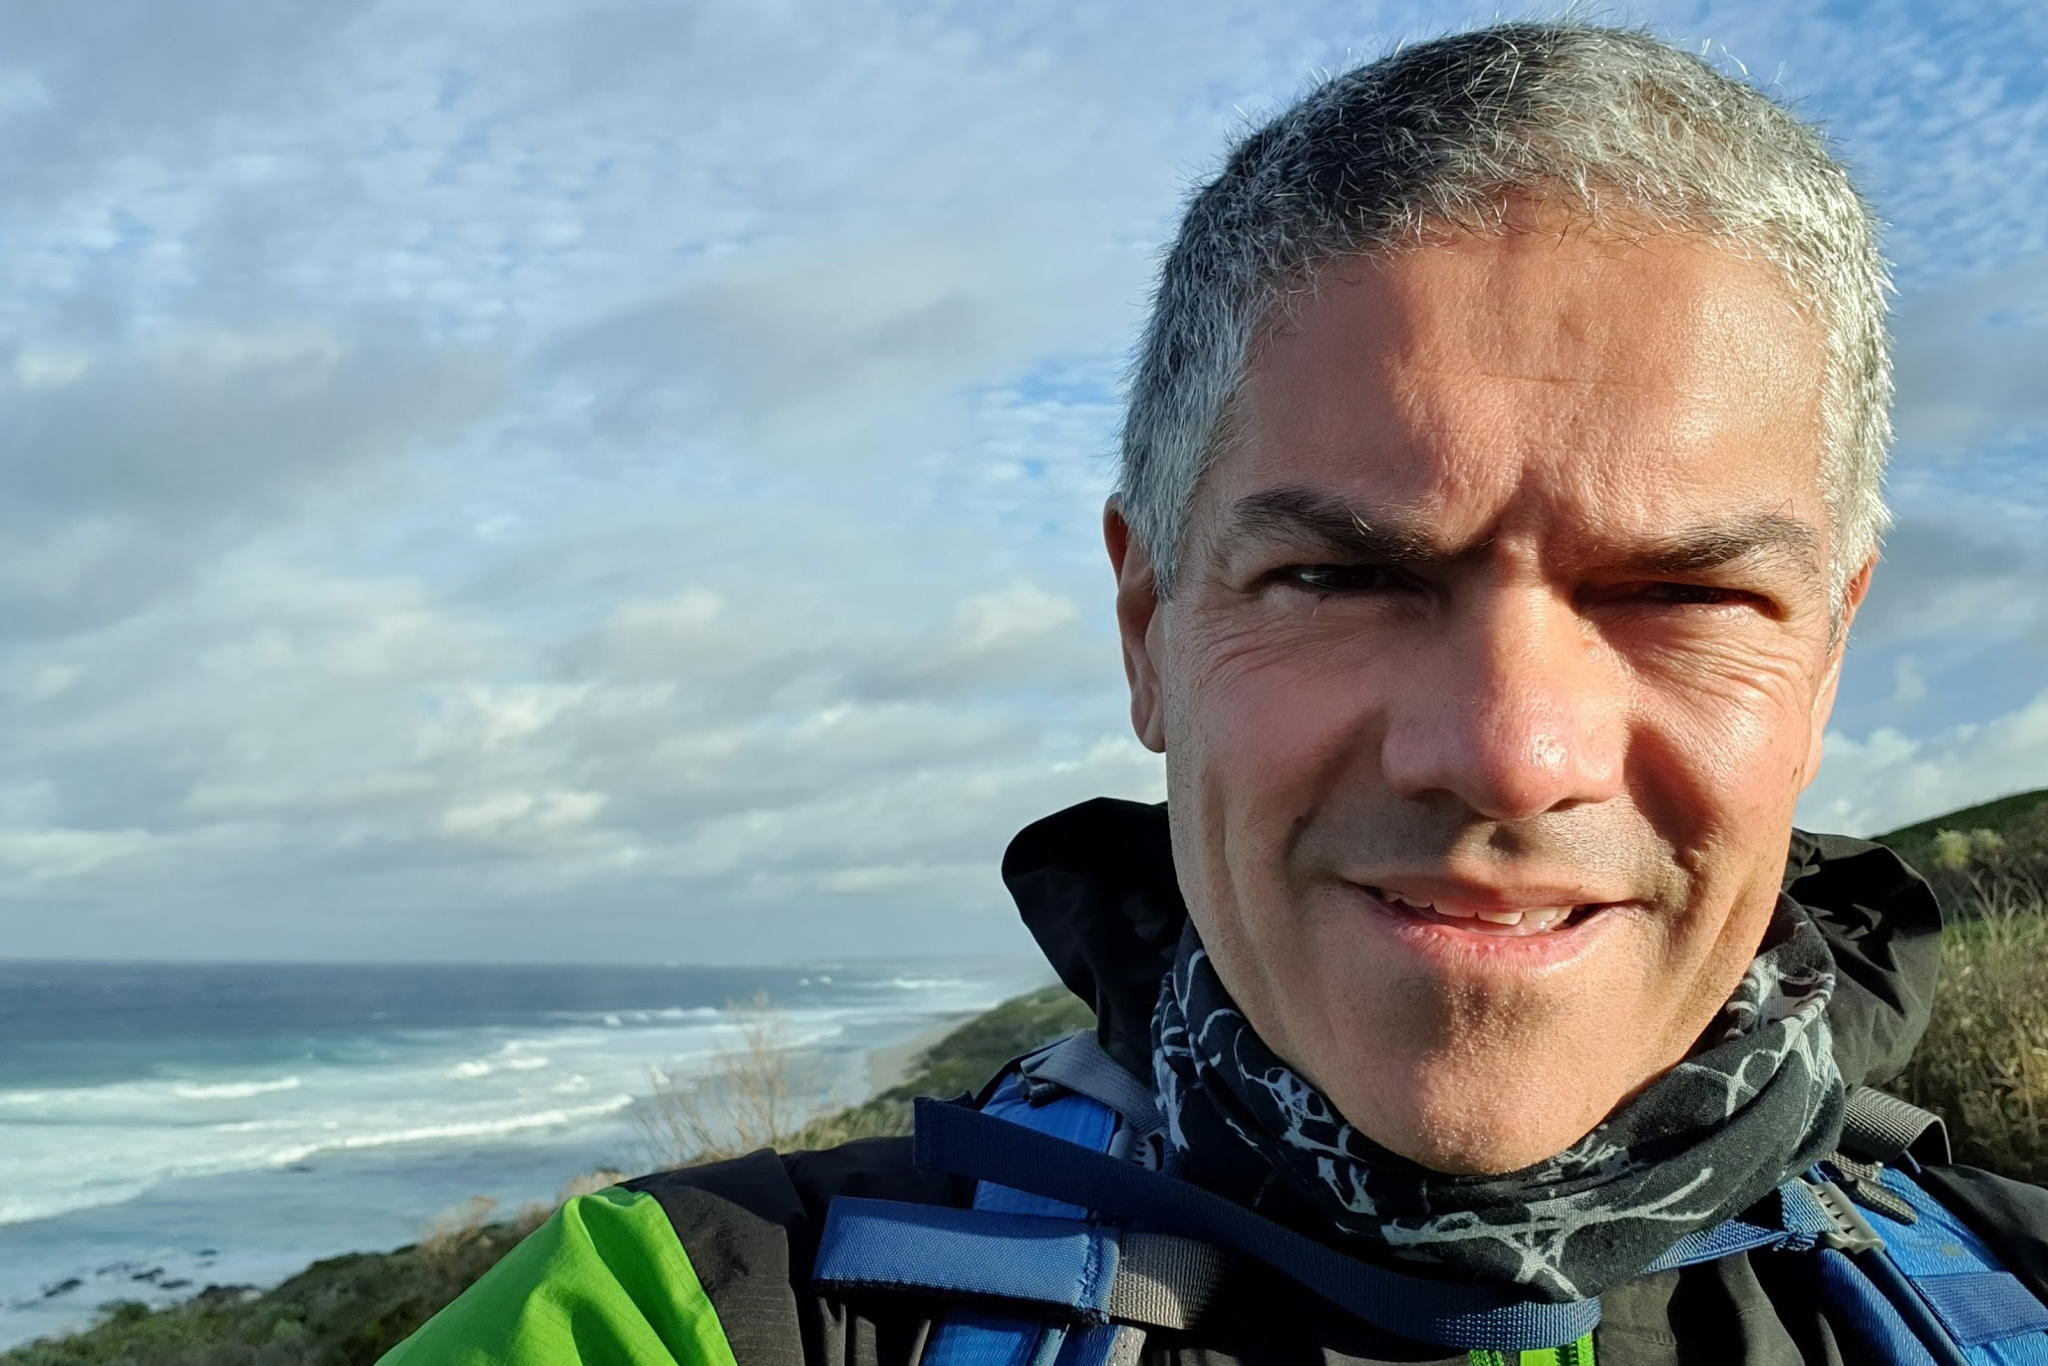 Cape to Cape Trek to Tackle Poverty fundraise for a cause